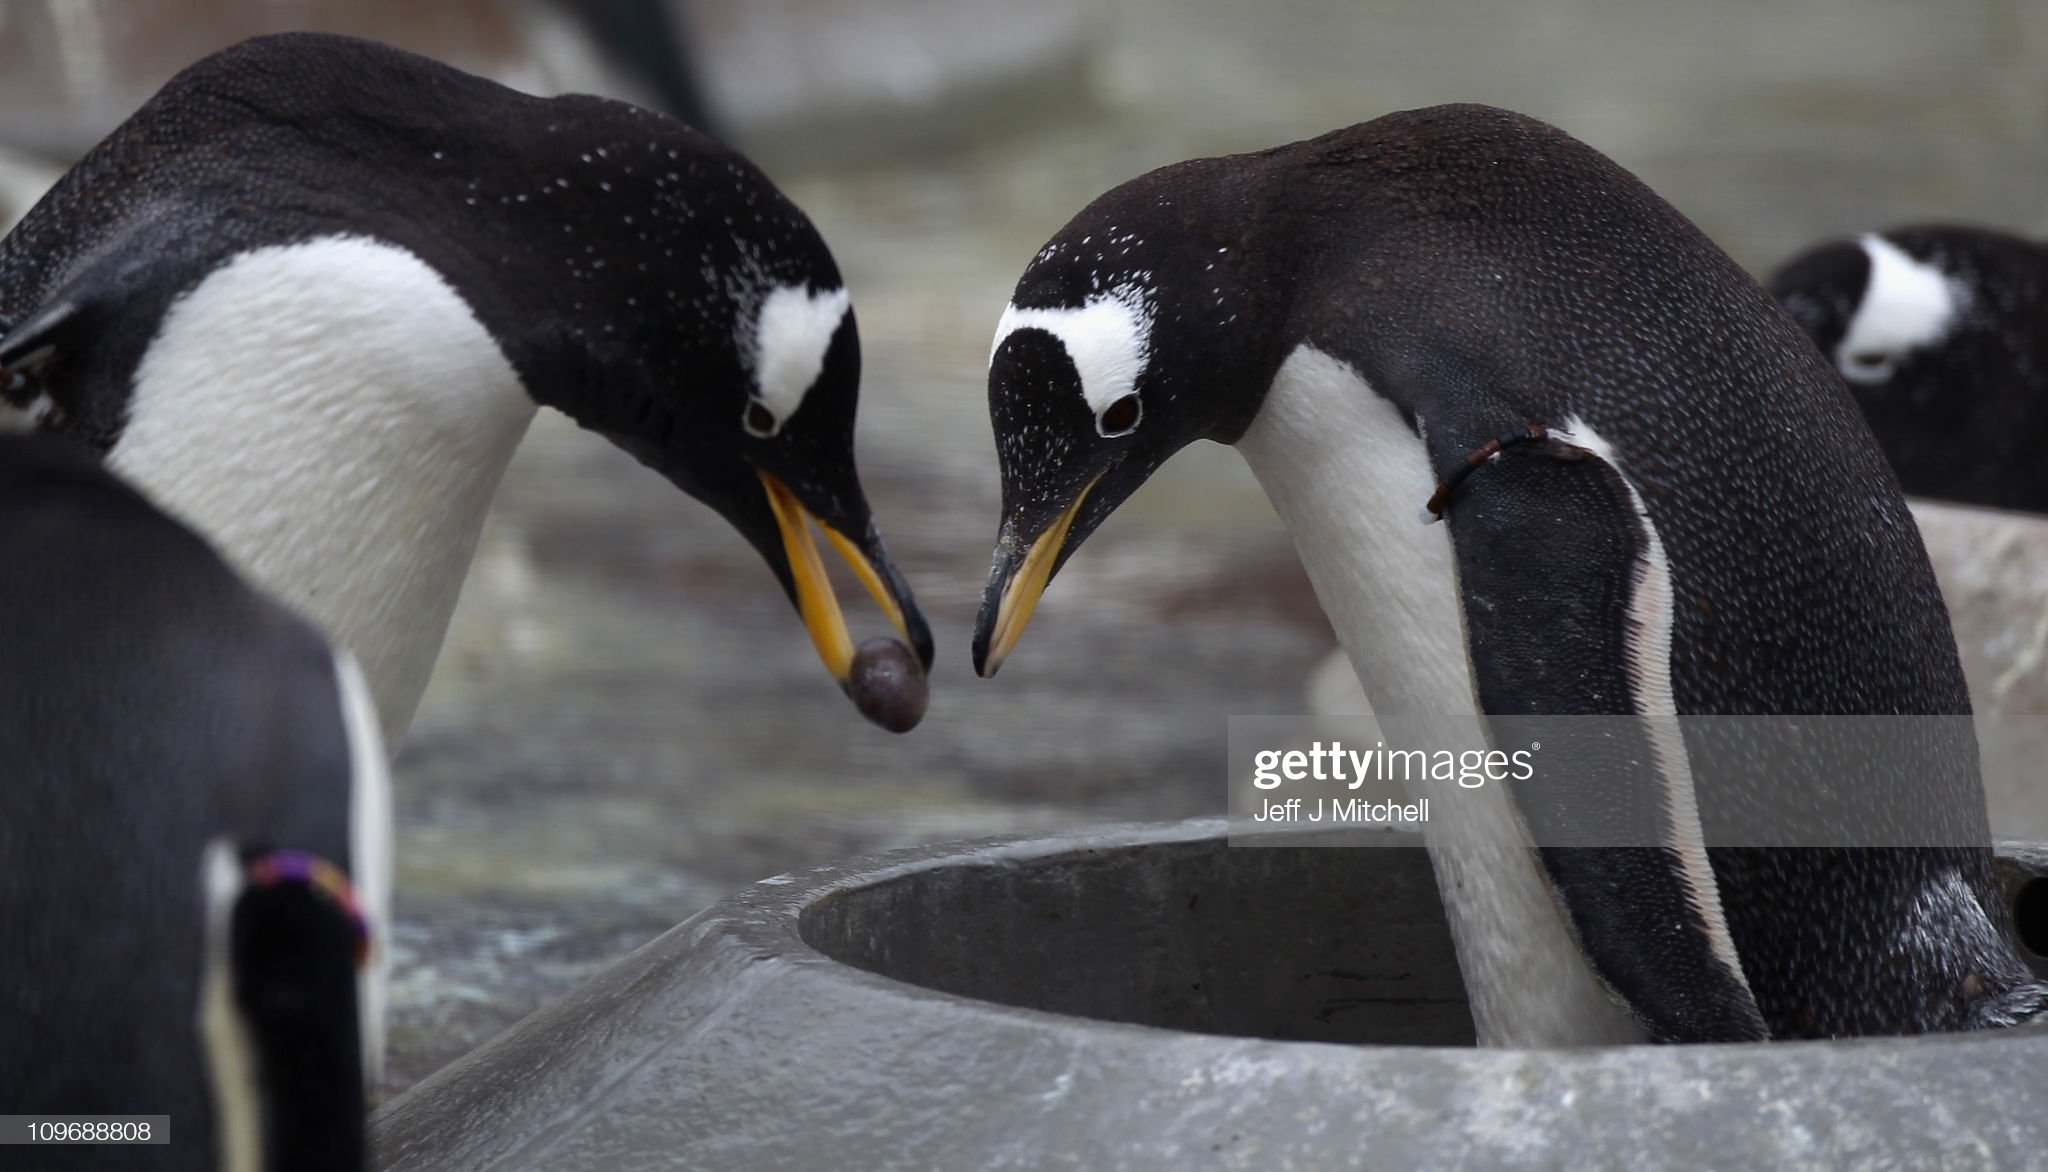 Edinburgh Zoo Keepers Install Nesting Rings For The Gentoo Penguins : News Photo